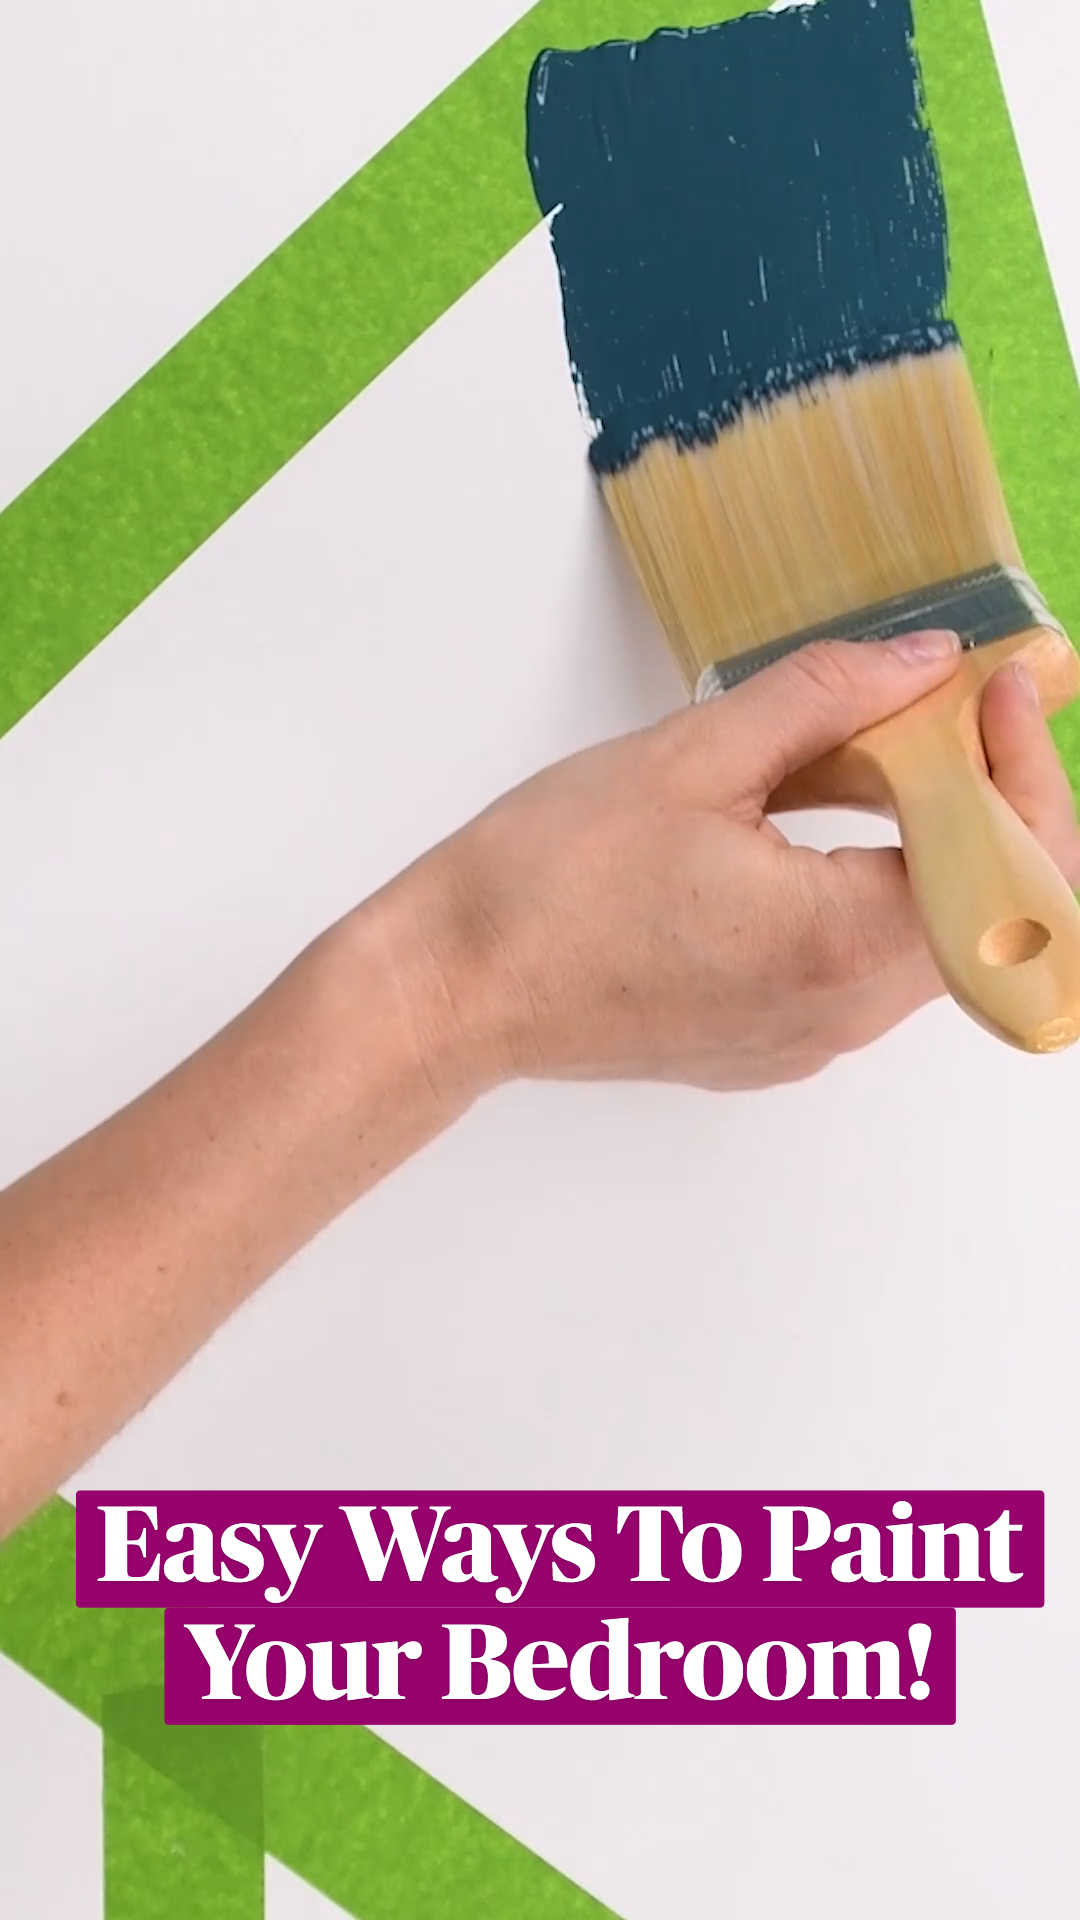 Easy Ways To Paint Your Own Bedroom!